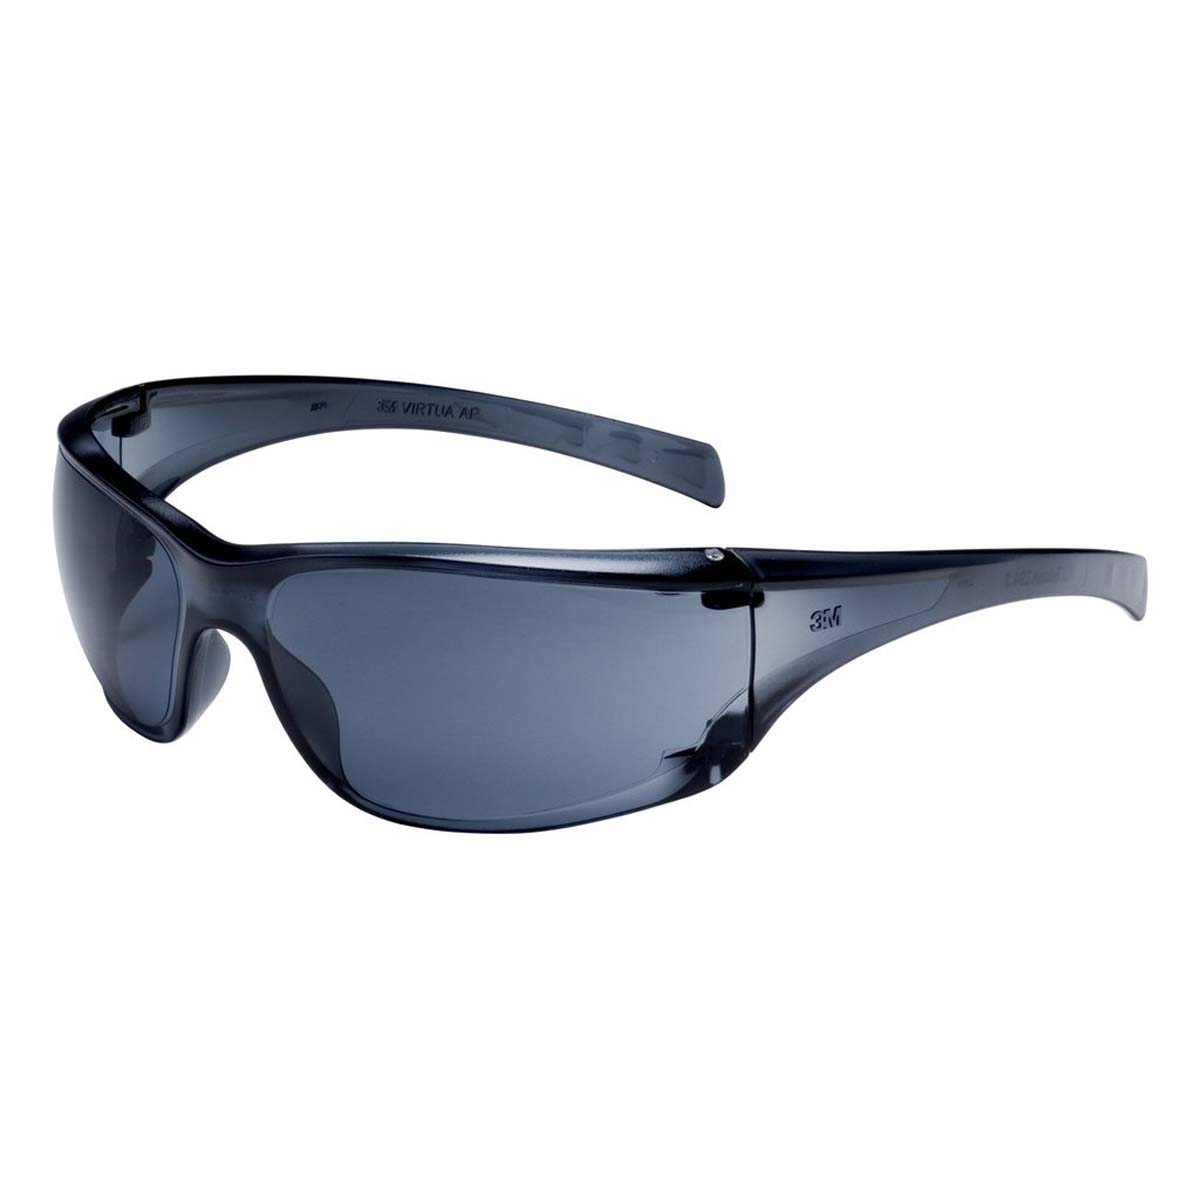 3M Virtua AP Protective Eyewear 11815-00000-20 Gray Hard Coat Lens,